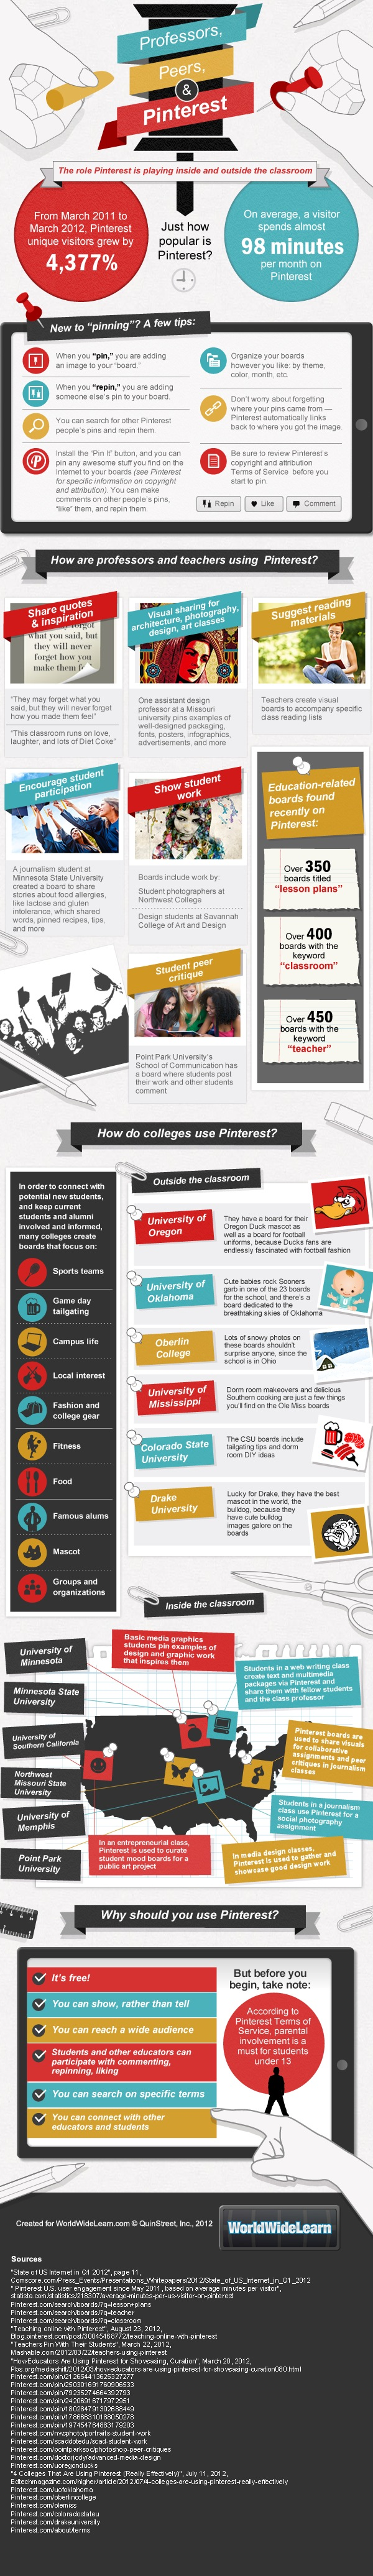 Pinterest and Professors